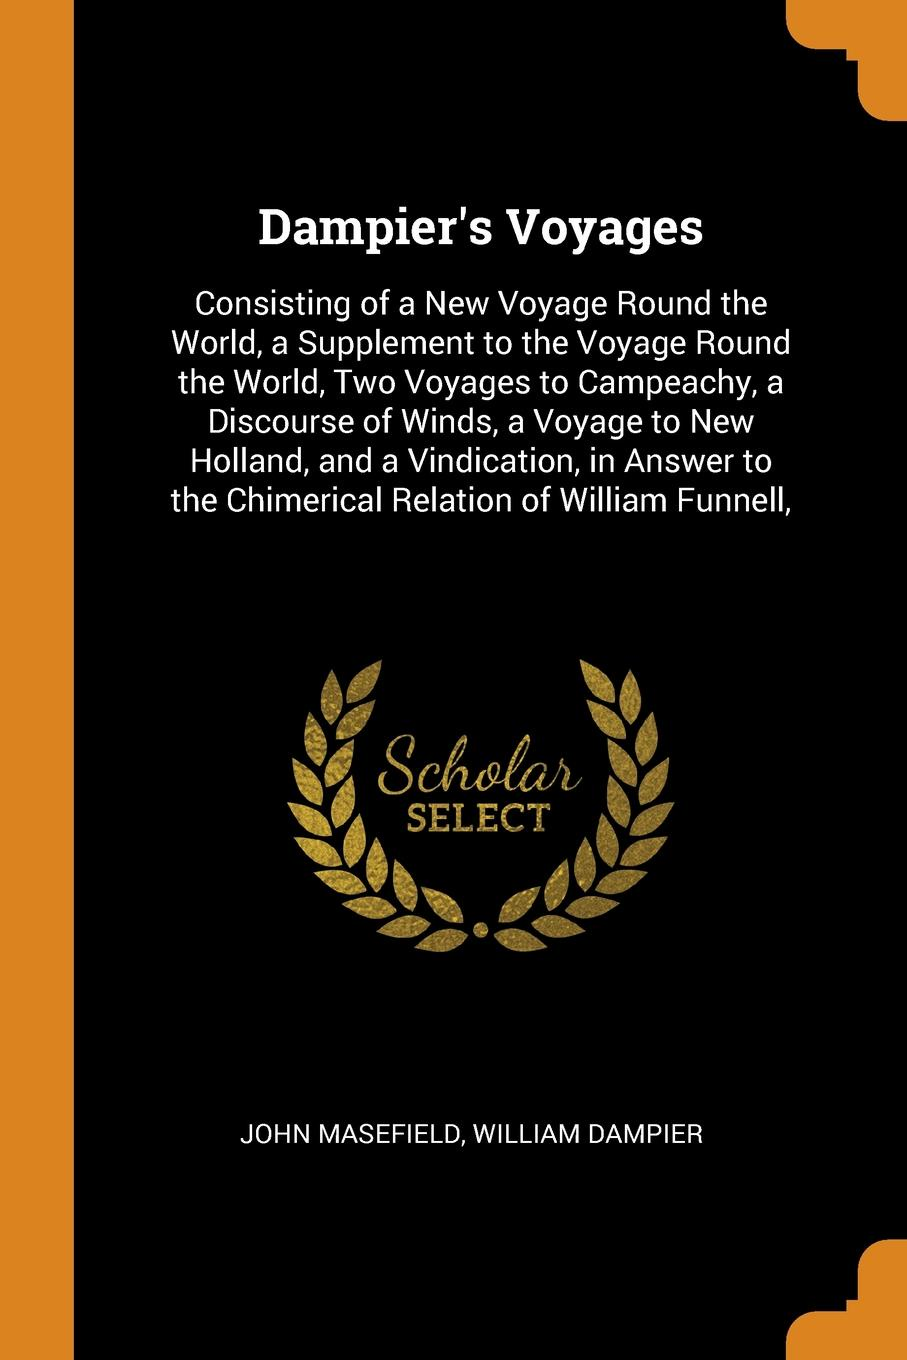 John Masefield, William Dampier Dampier's Voyages. Consisting of a New Voyage Round the World, a Supplement to the Voyage Round the World, Two Voyages to Campeachy, a Discourse of Winds, a Voyage to New Holland, and a Vindication, in Answer to the Chimerical Relation of William ... defoe d a new voyage round the world